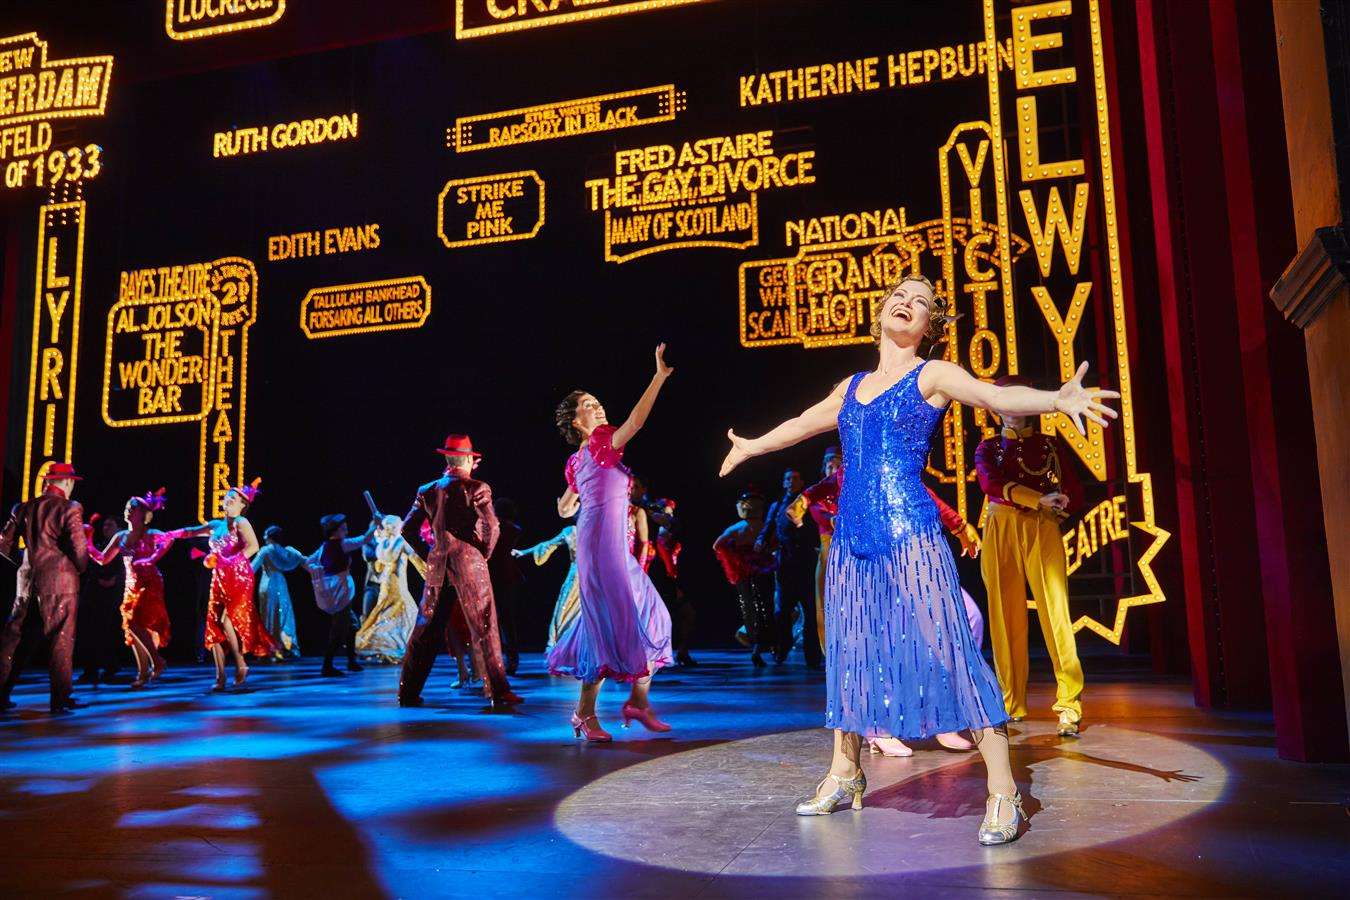 42nd Street på Theatre Royal Drury Lane